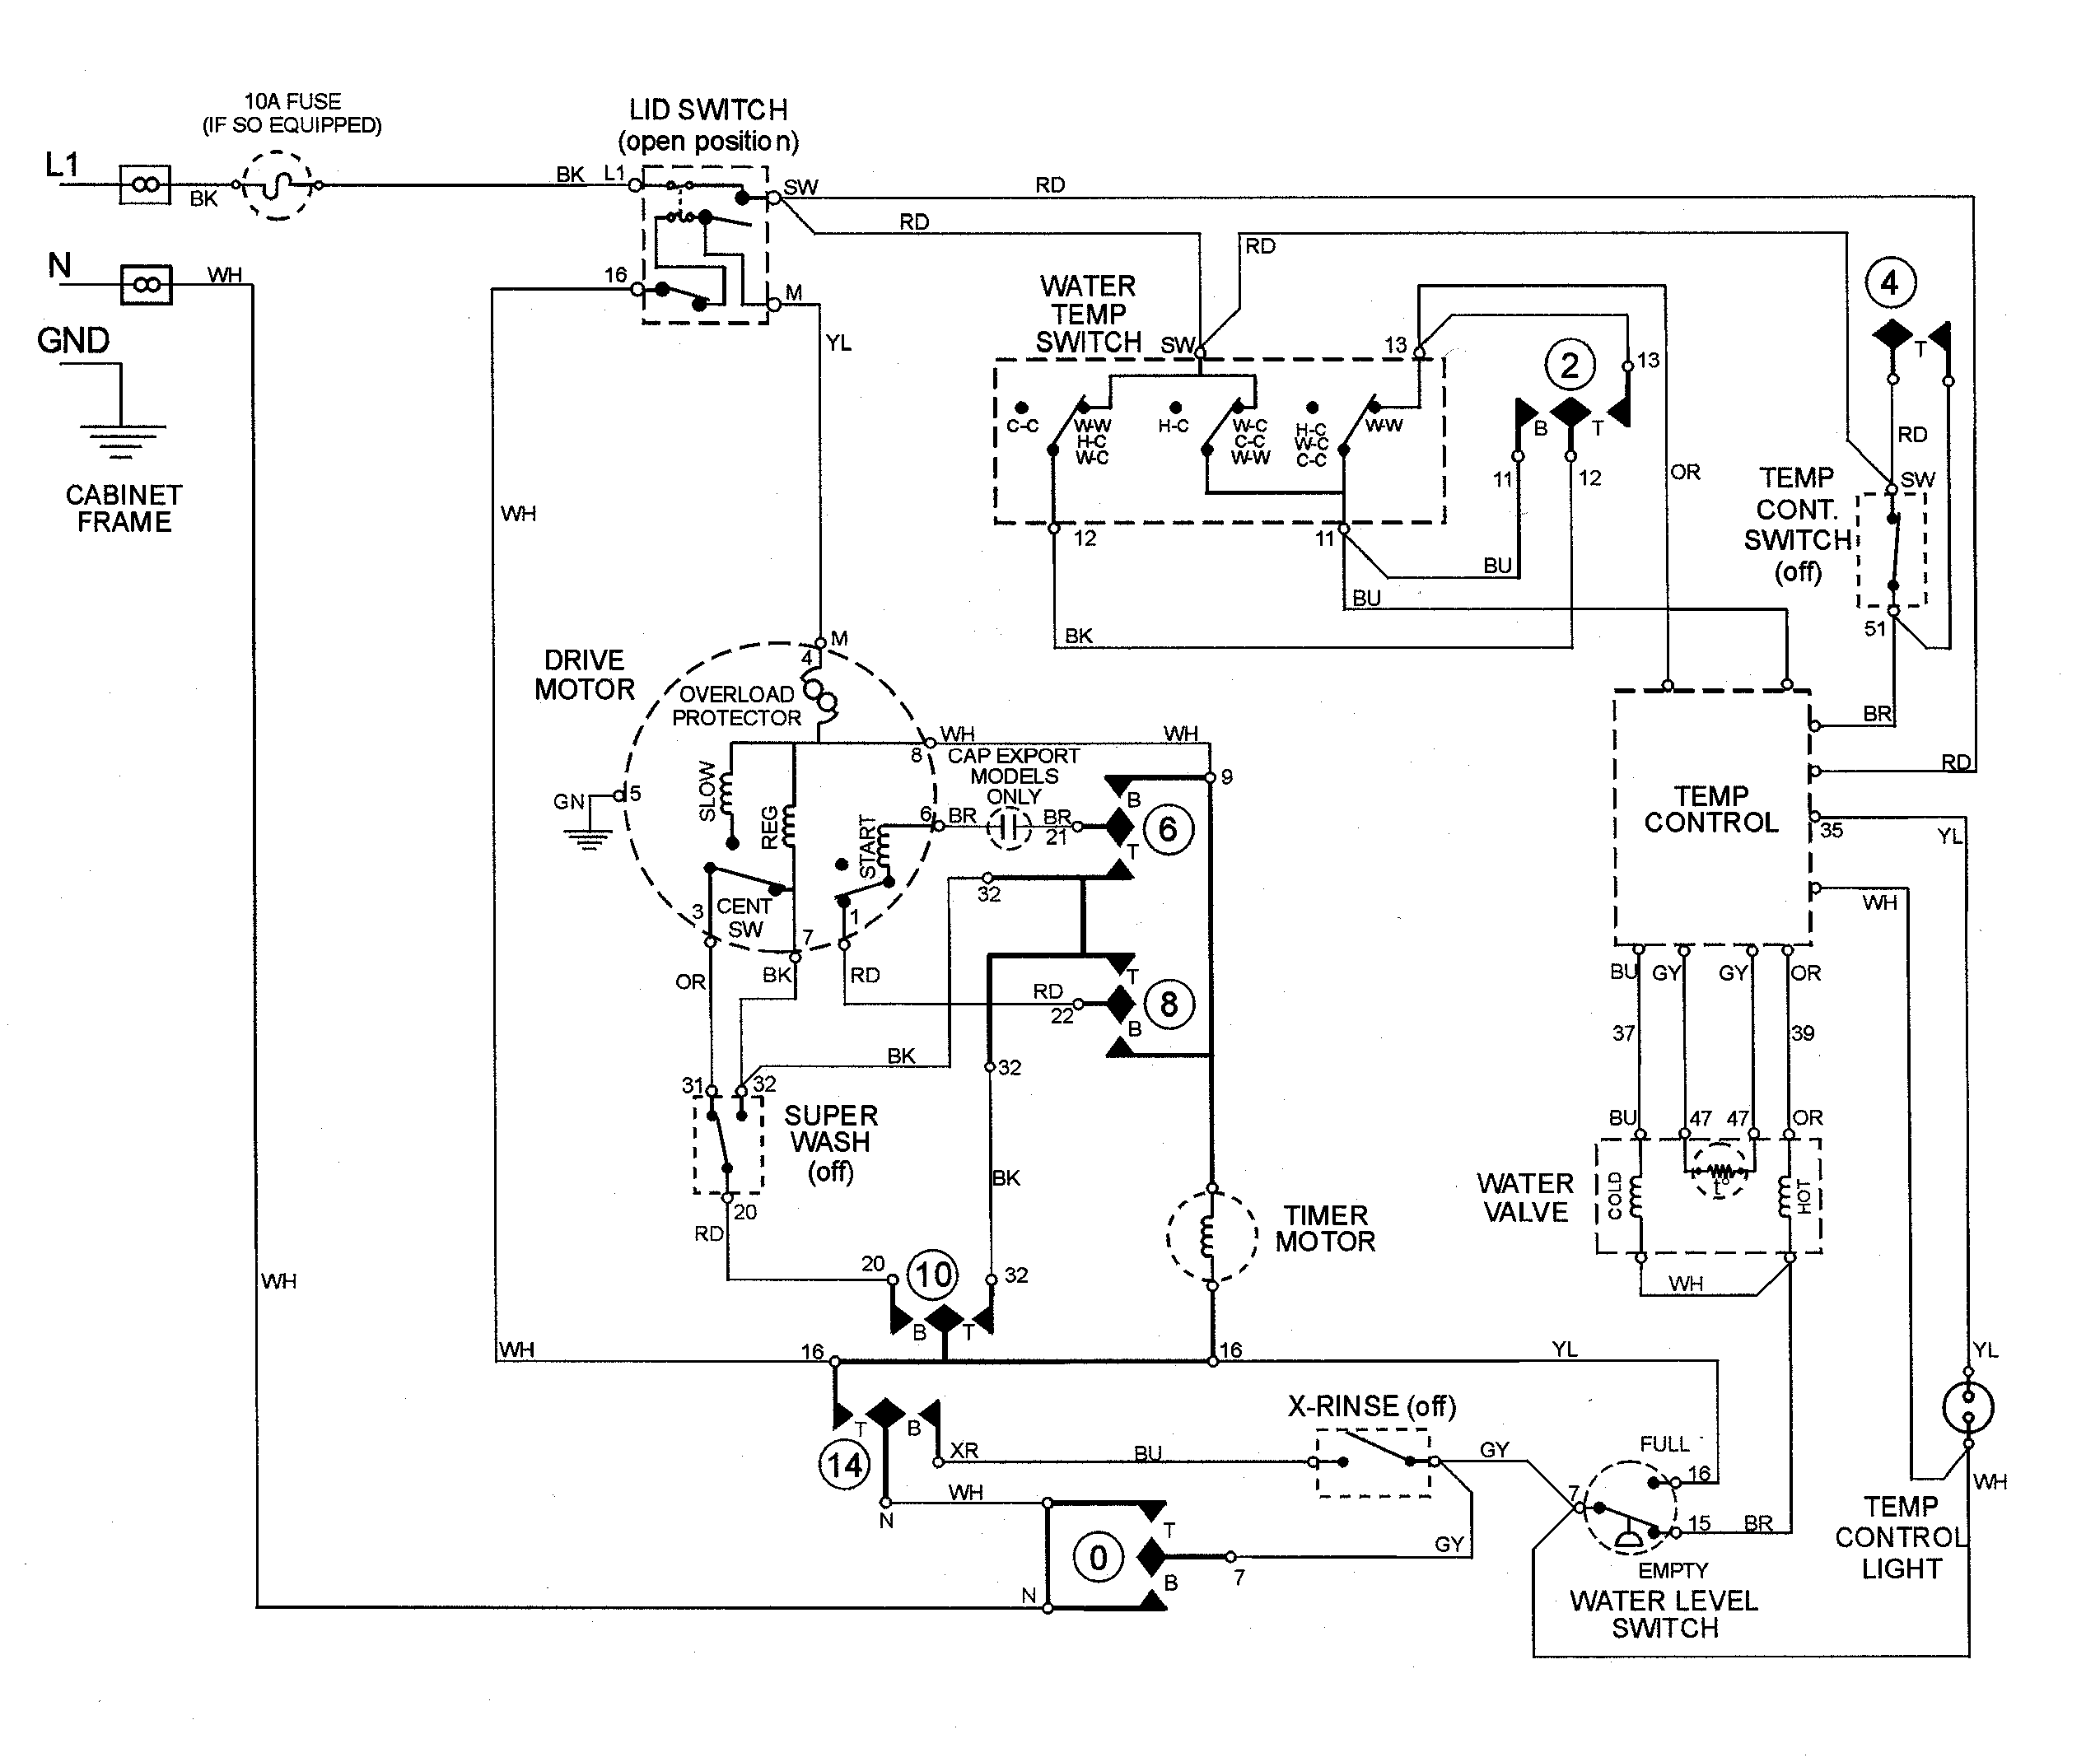 hight resolution of ge electric motor diagram wiring diagram name ge motor diagram wiring diagram rows general electric motor